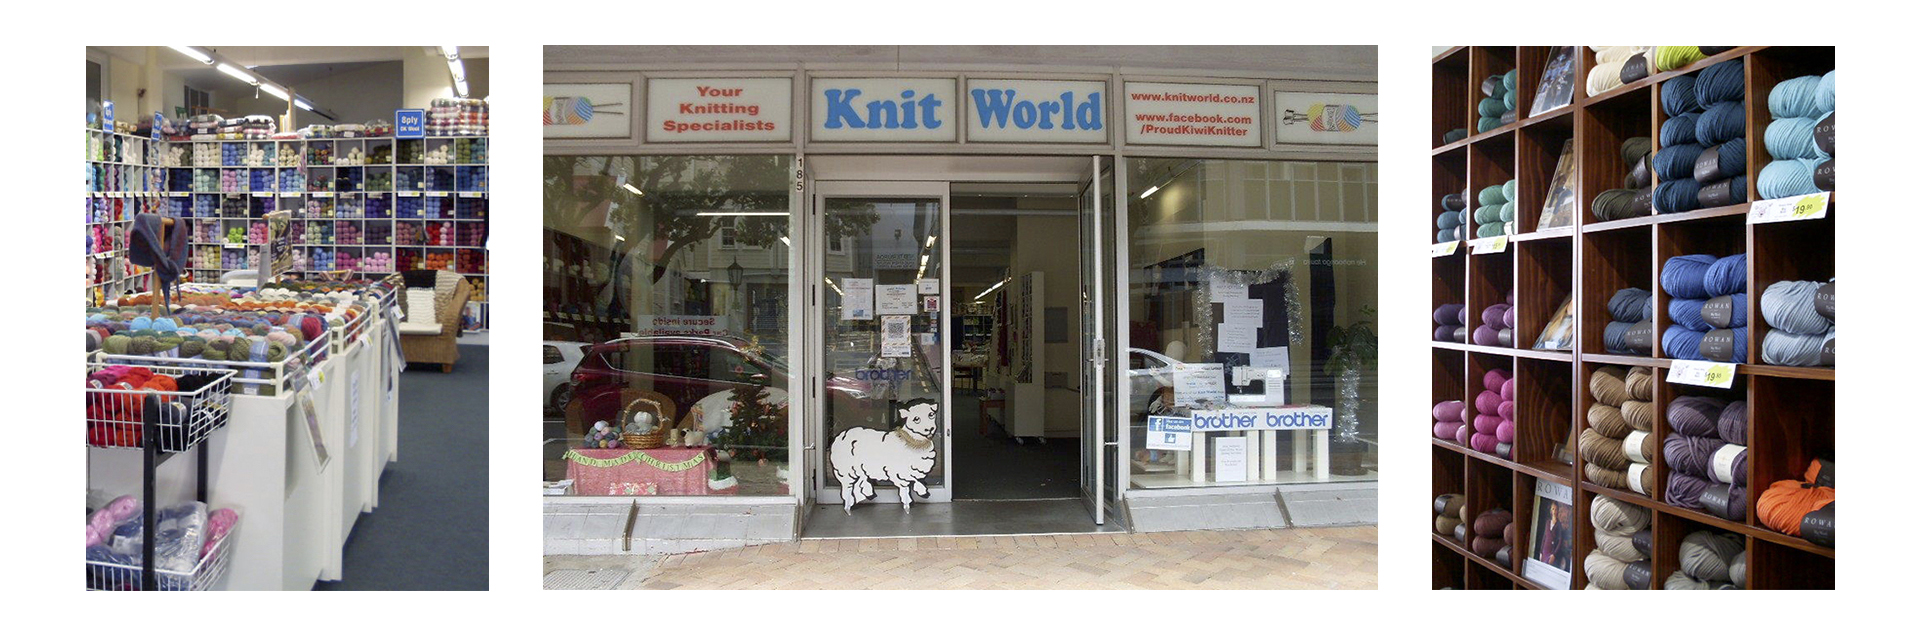 Serving kiwi knitters and stitchers for almost fifty years, Knit World is a family-owned business started by John and Lorna Goldingham. Now run by brother-sister duo David and Anne, with the help of their sister Karyn, Knit World aims to keep knitting and sewing active in every New Zealand family.